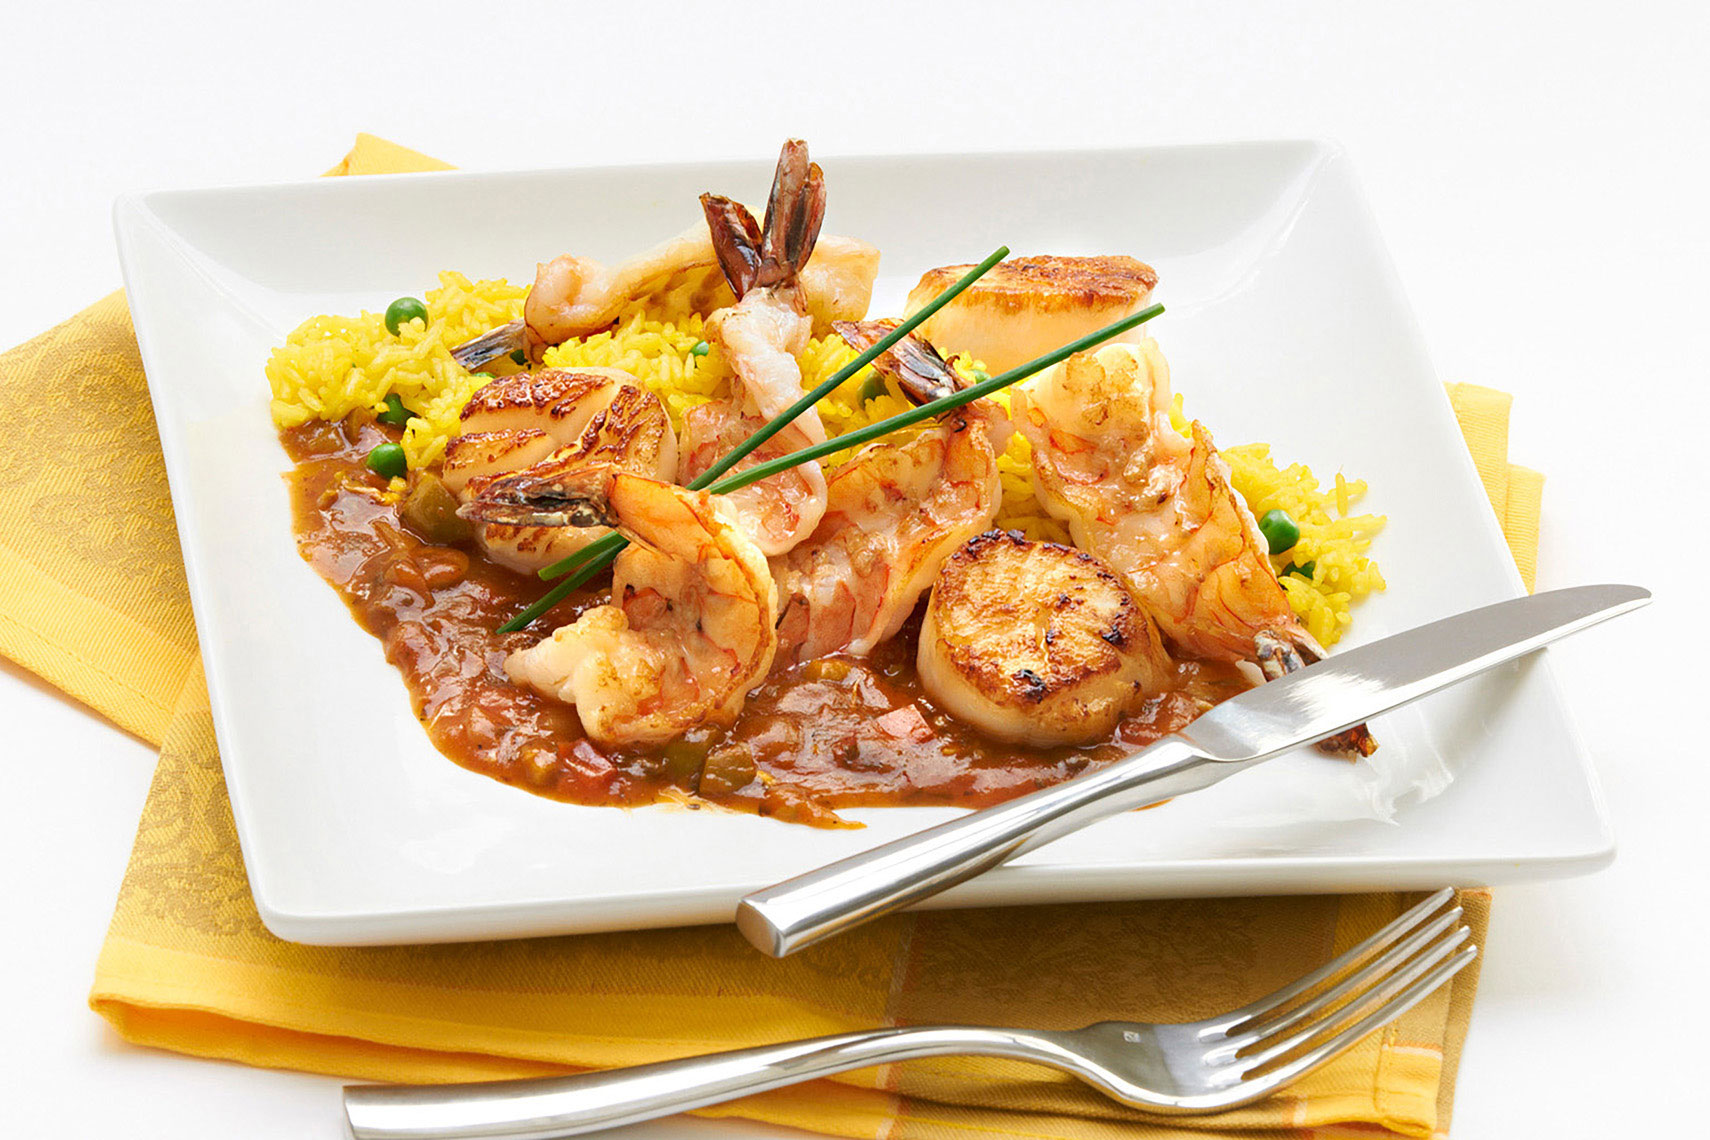 Assian-shrimp-and-scallop-in-red-pepper-sauce-with-safron-rice-by-top-Los-Angeles-food-photographer Joe Atlas.